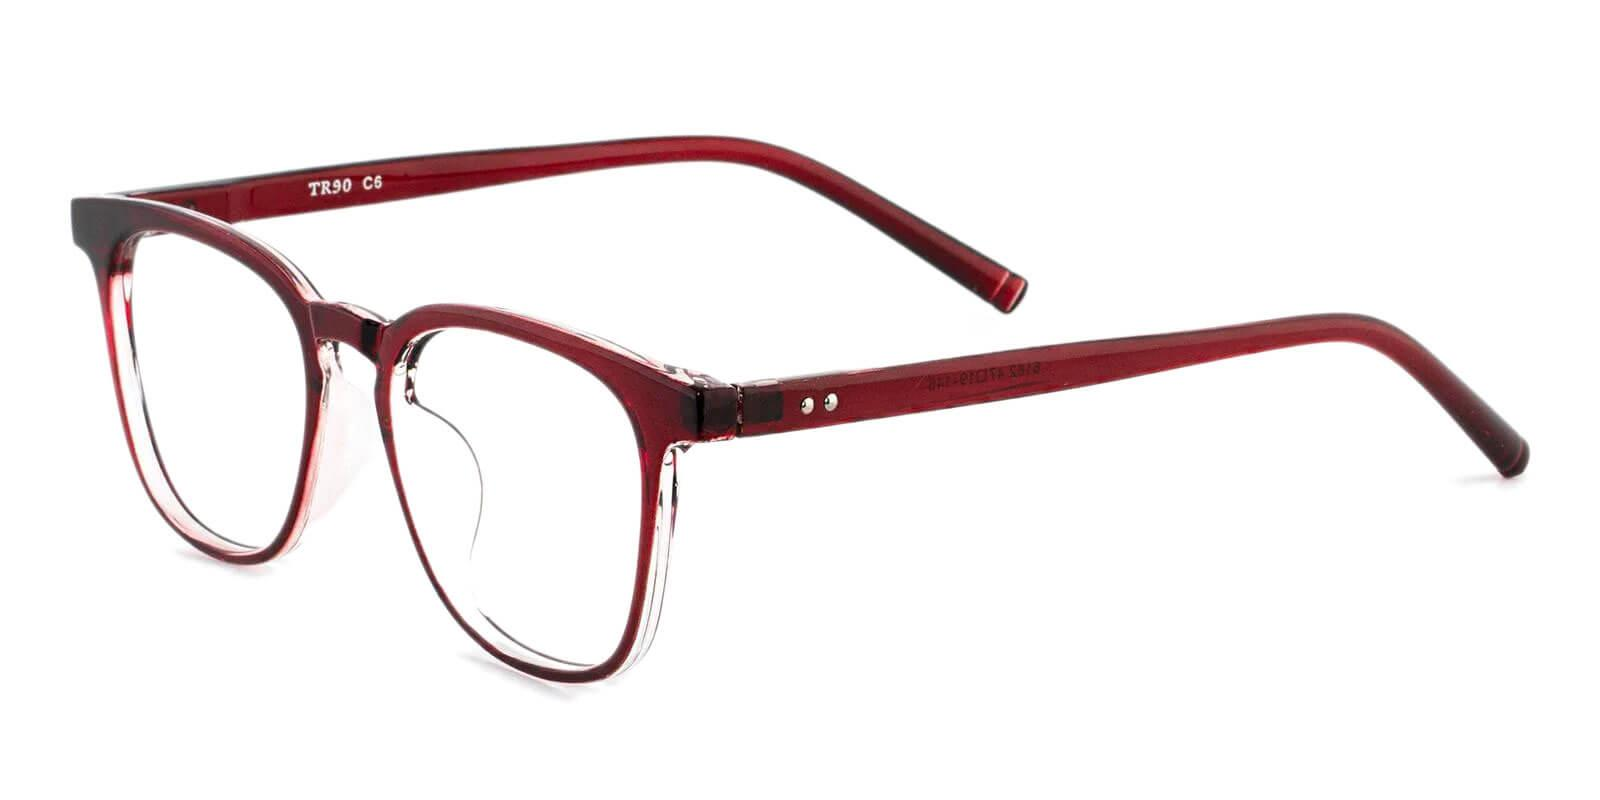 Zaire Red TR Eyeglasses , UniversalBridgeFit Frames from ABBE Glasses